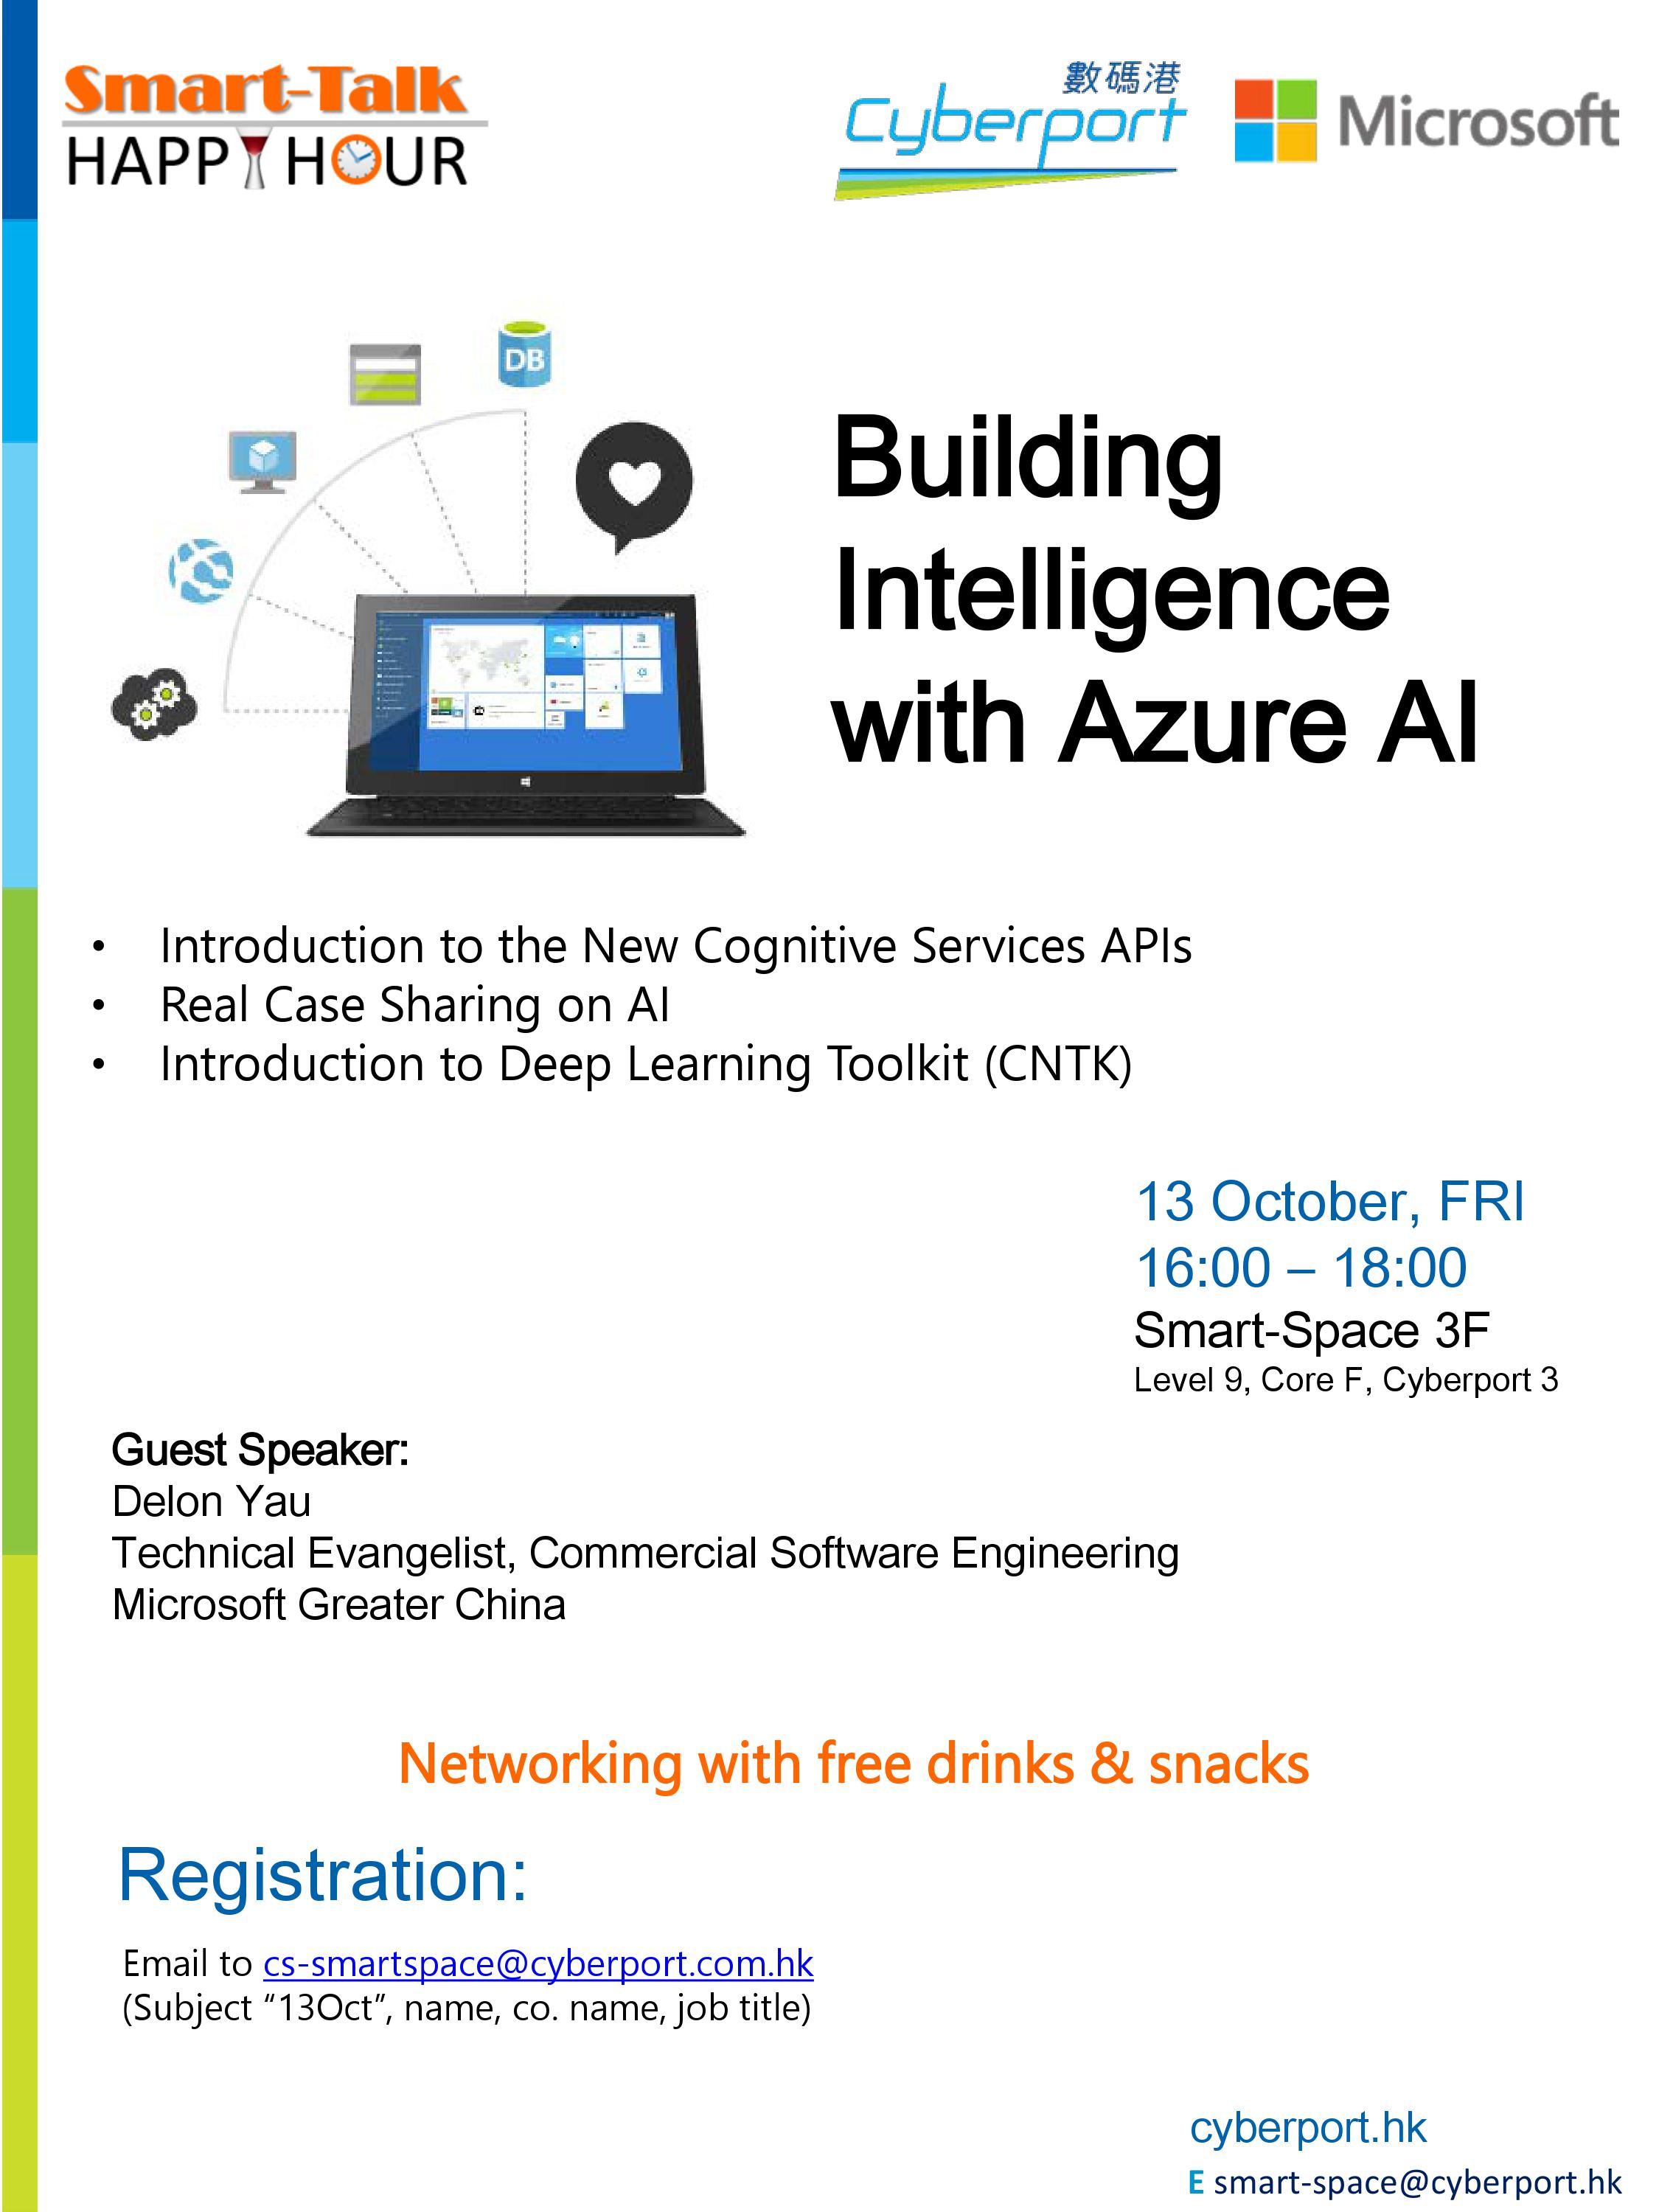 Smart Talk & Happy Hour: Building Intelligence with Azure AI